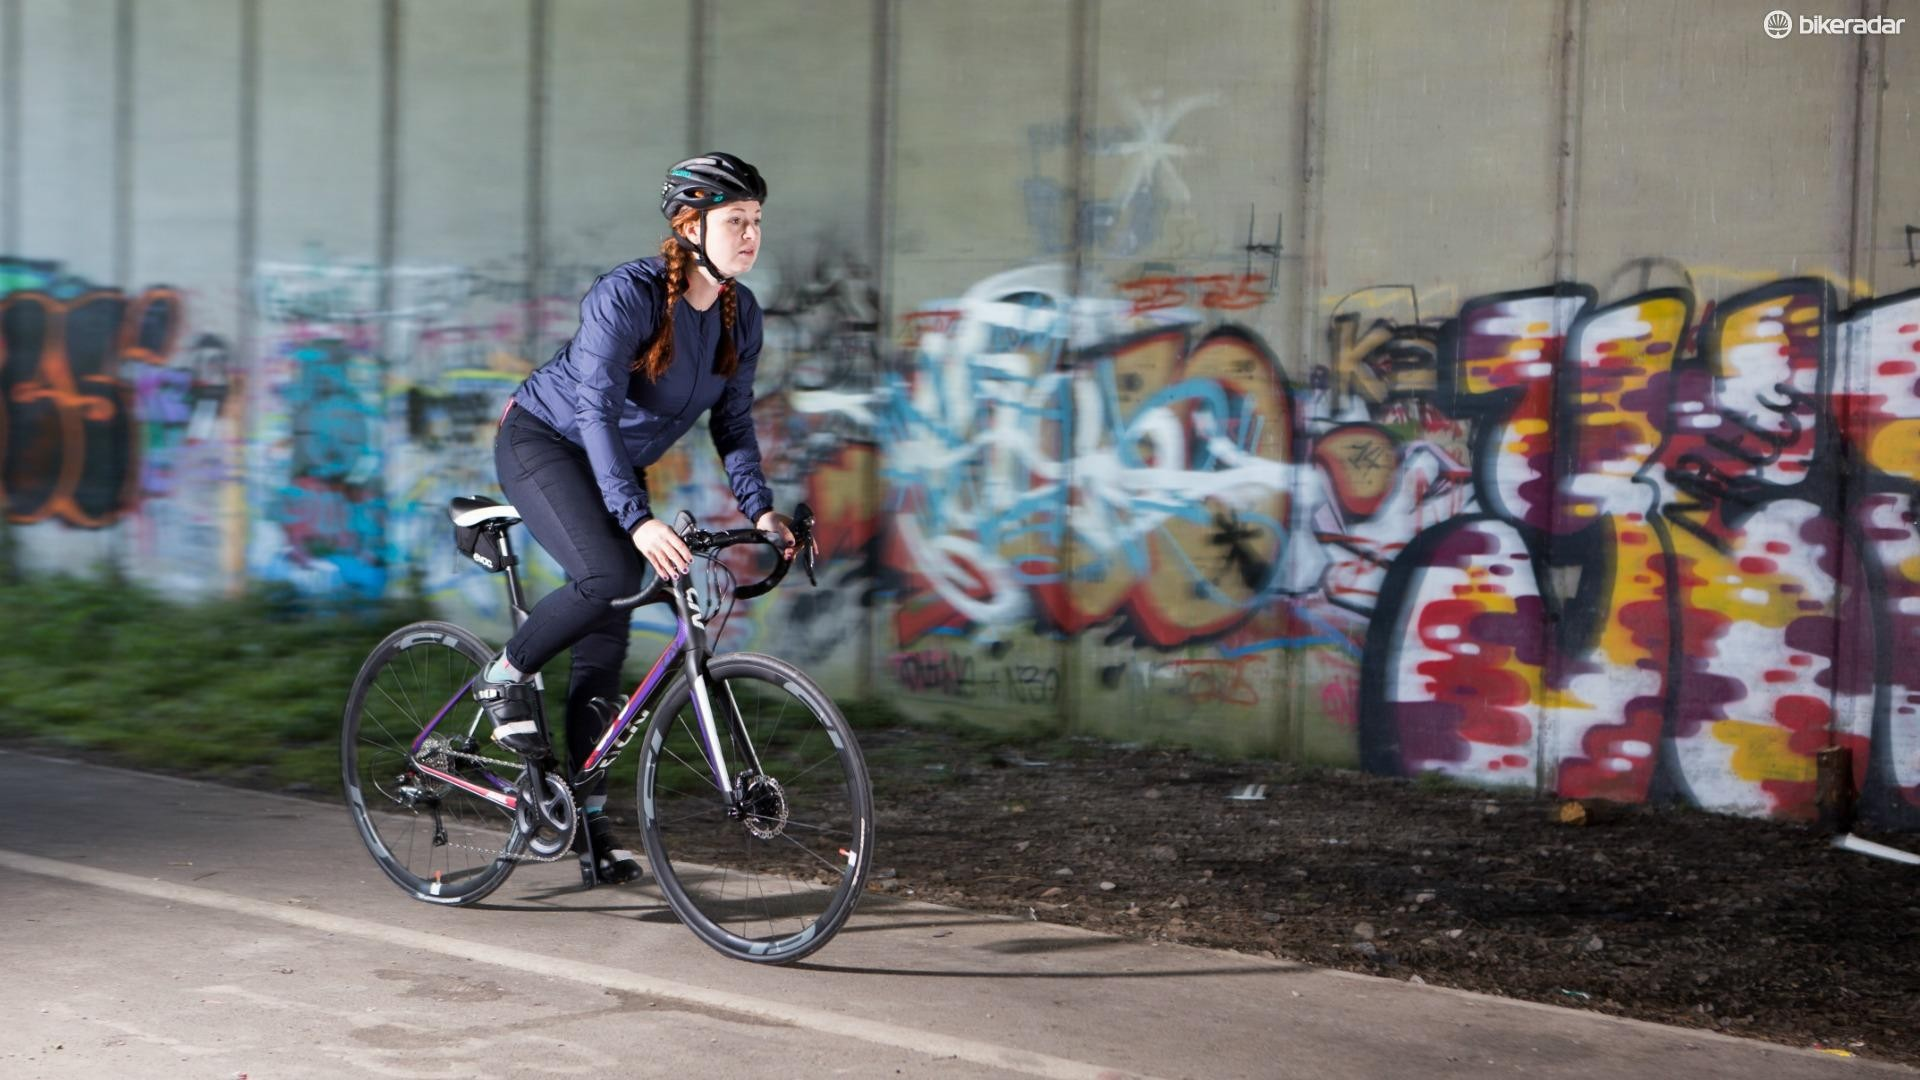 Whether you're looking to ride to work, take up road cycling or head off on a mountain biking adventure, you'll never regret getting into cycling